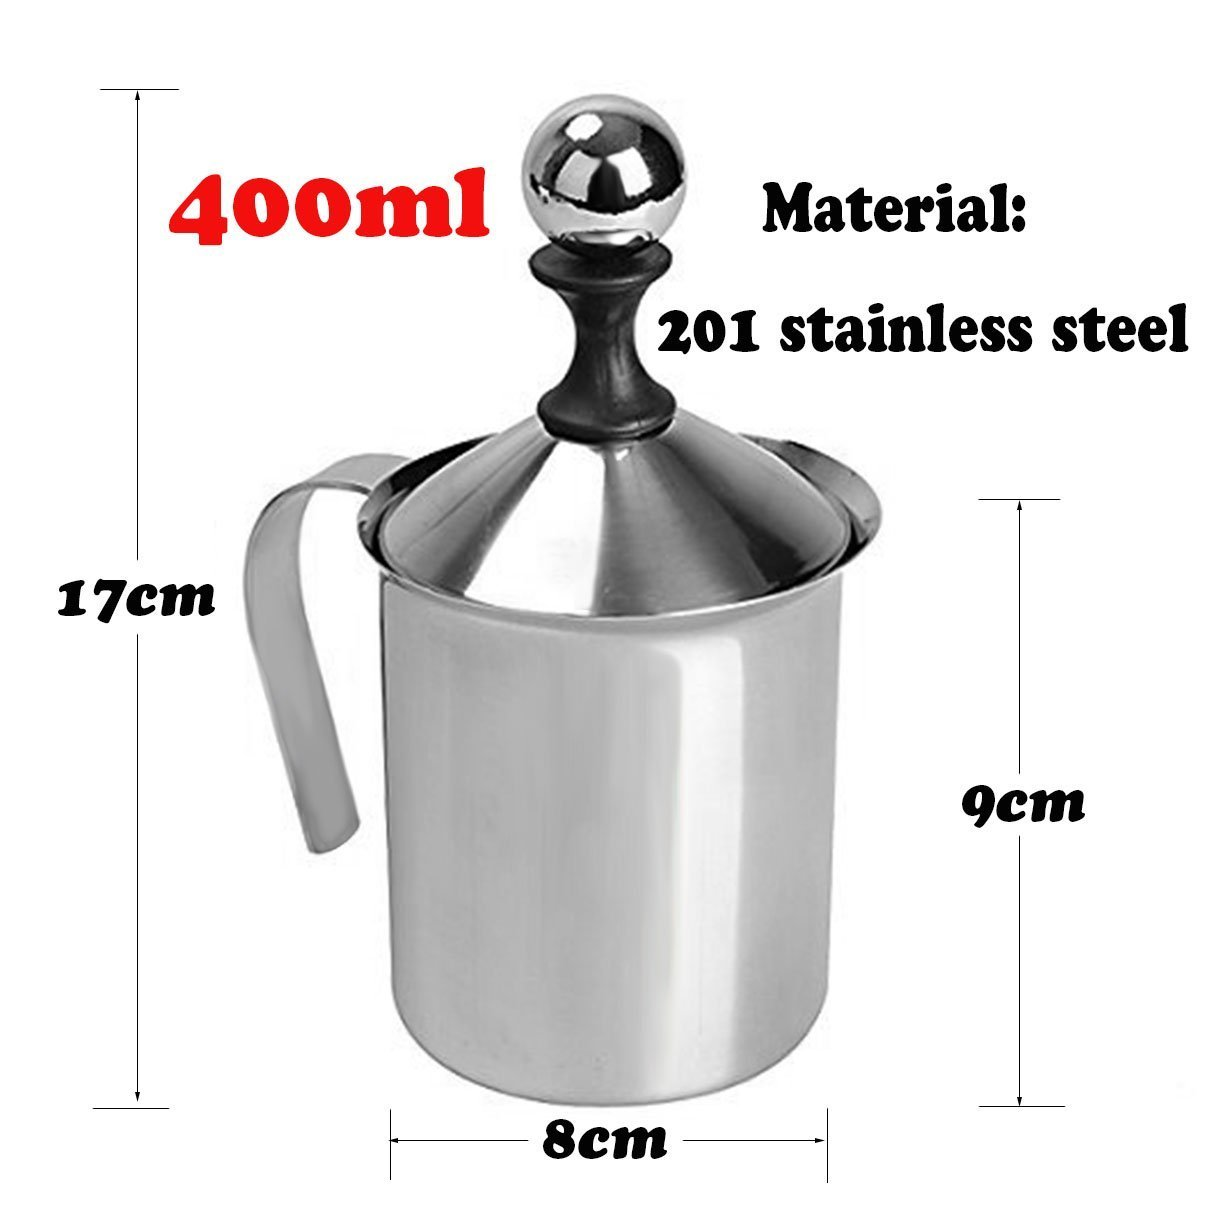 Manual Milk Frother, Stainless Steel Hand Pump Milk Foamer, Handheld Milk Frothing Pitchers,Manual Operated Milk Foam Maker For Cappuccions and Coffee Latte 14-Ounce/400ml